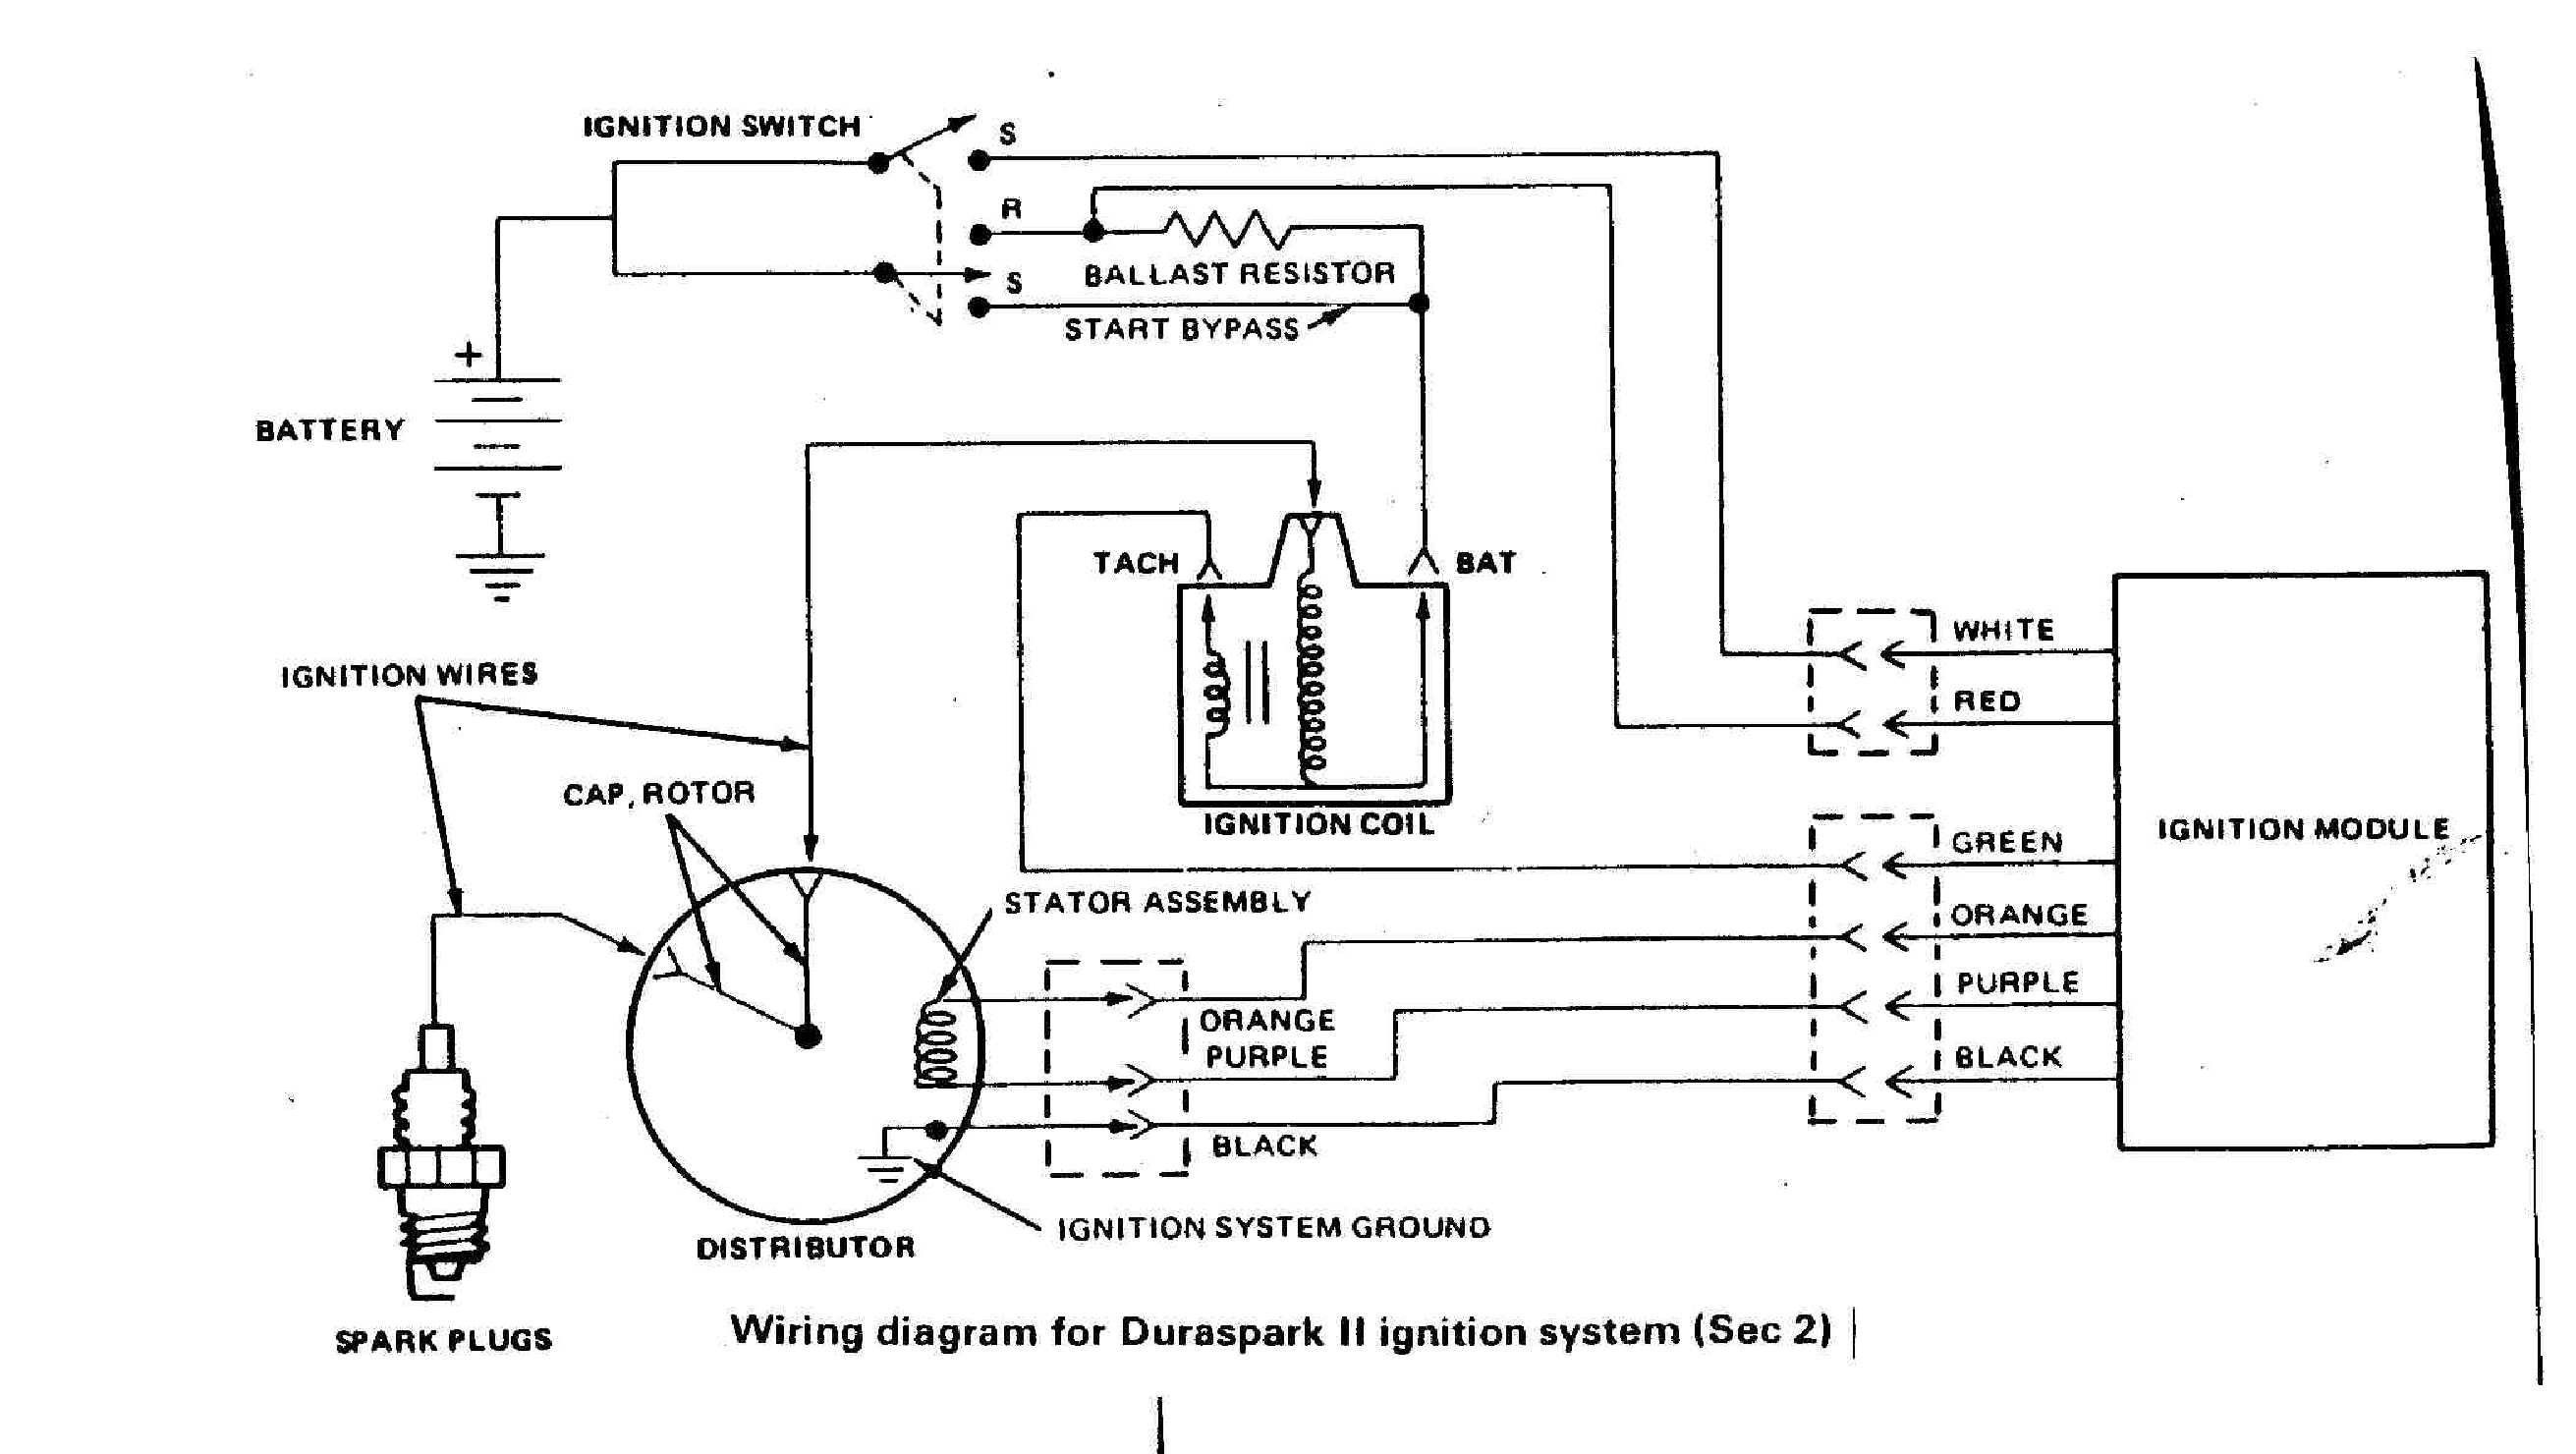 Unique Simple Switch Wiring Diagram Wiringdiagram Diagramming Diagramm Visuals Visualisation Graphical Check More At Https Diagram Ignition Coil Dyna